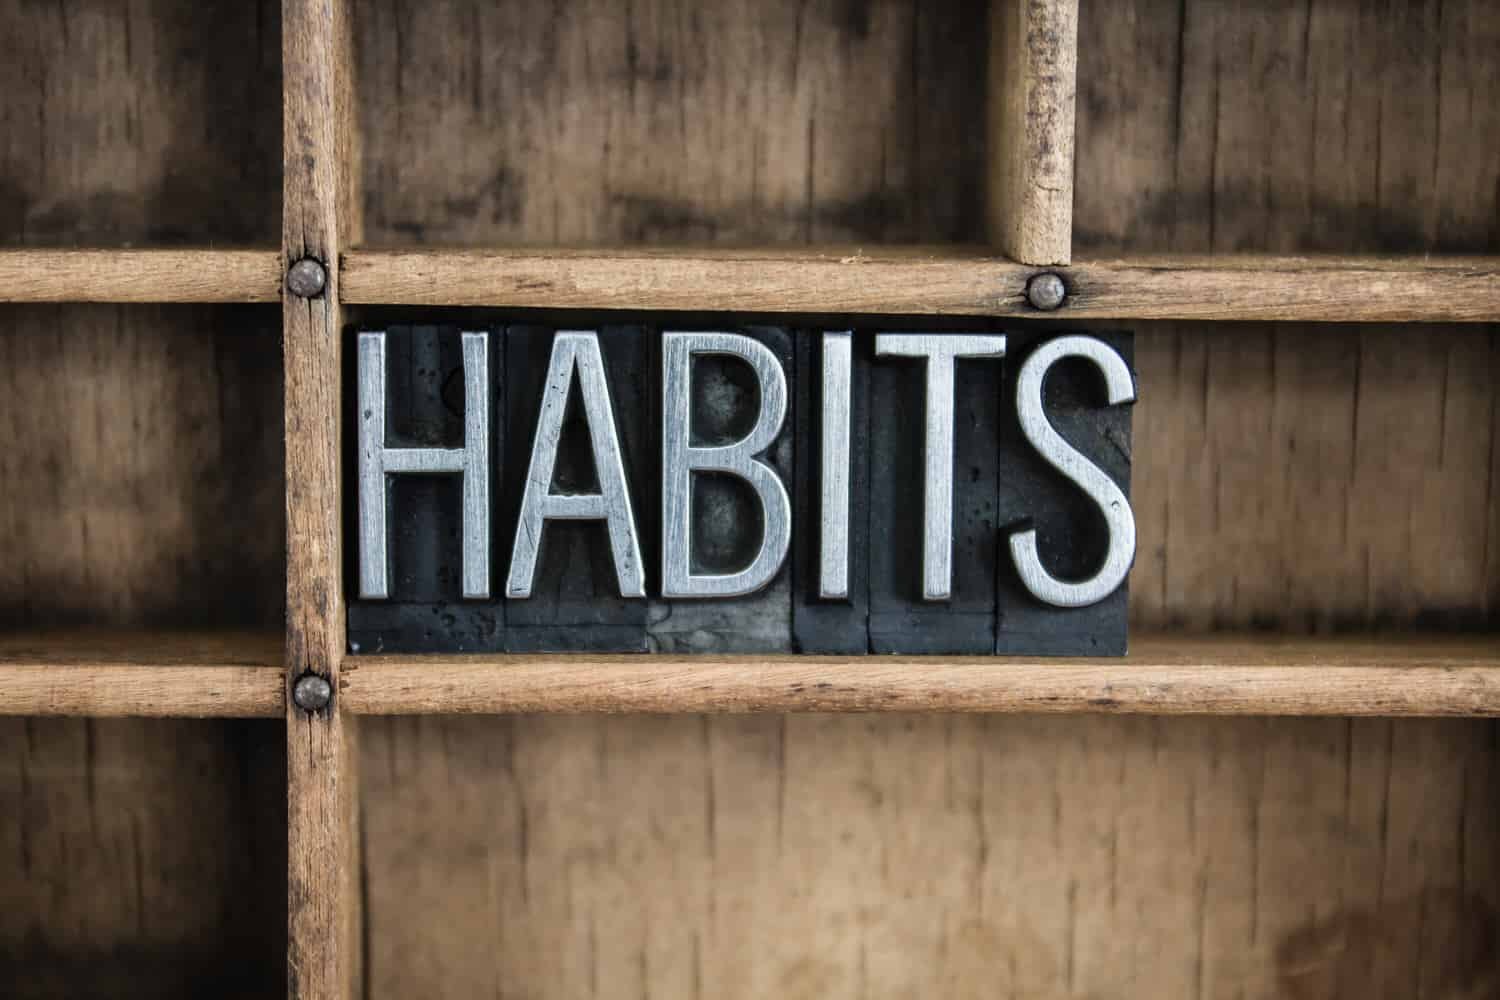 How Will You Build Habits?